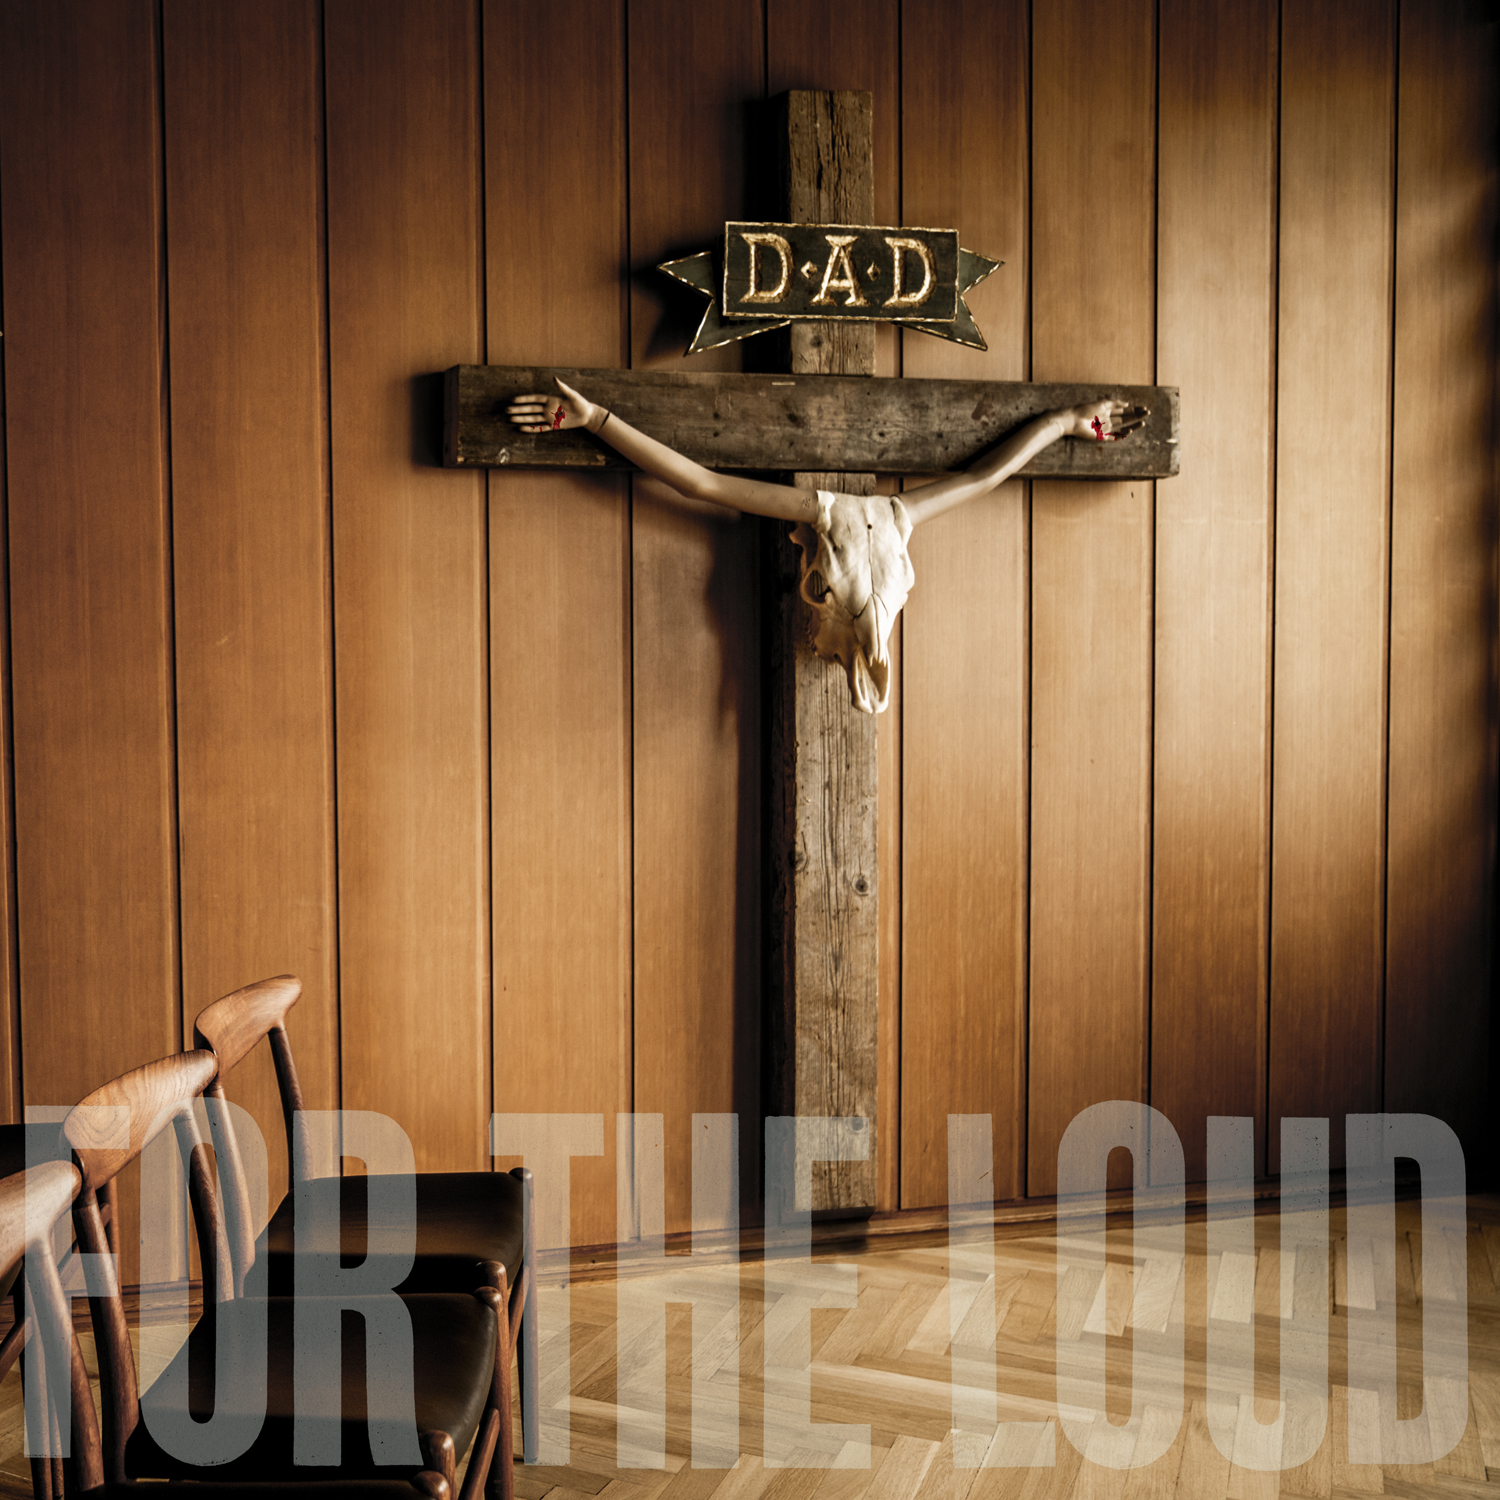 DAD - A Prayer For The Loud